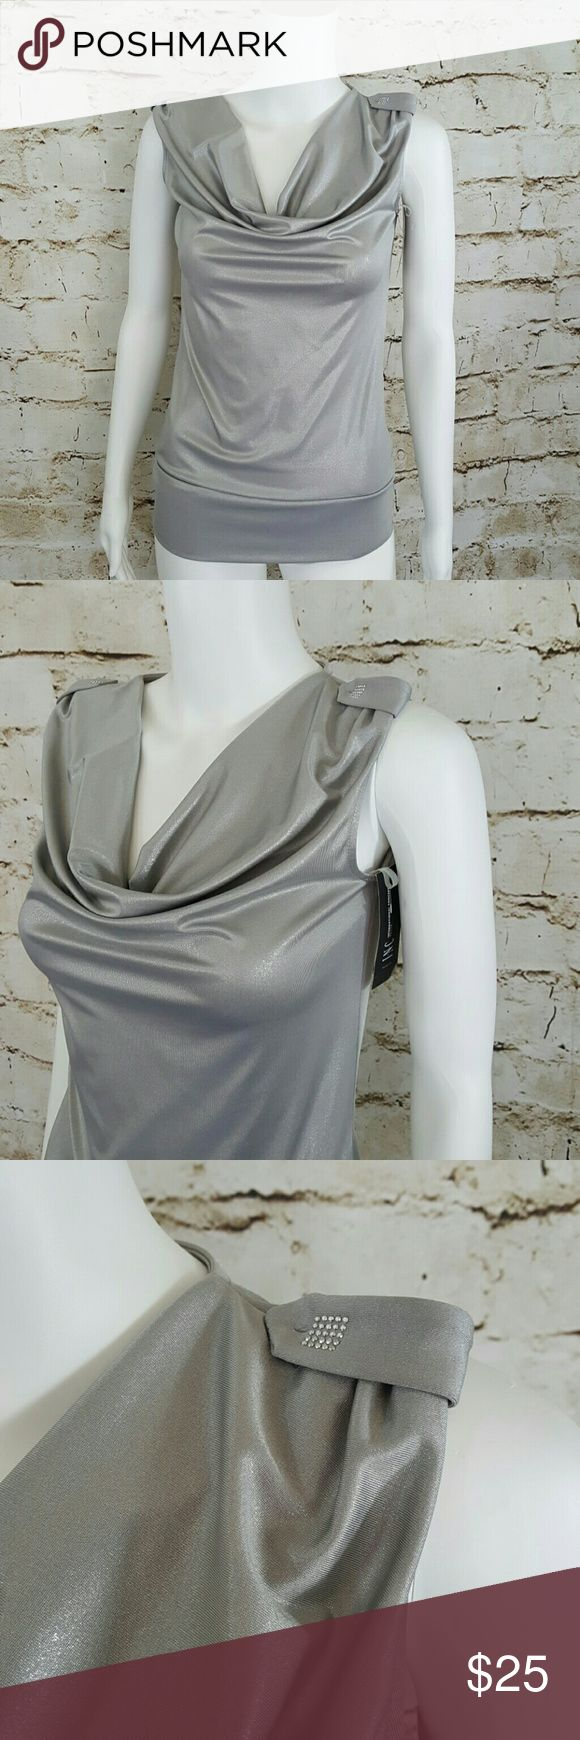 """NWT!! INC INTERNATIONAL CONCEPTS silver blouse Sparkly silver metallic top with drape v neck there is a weight attached to the neck to keep in place 17"""" across from armpit to armpit and 26"""" long from shoulder to hem in INC International Concepts Tops"""